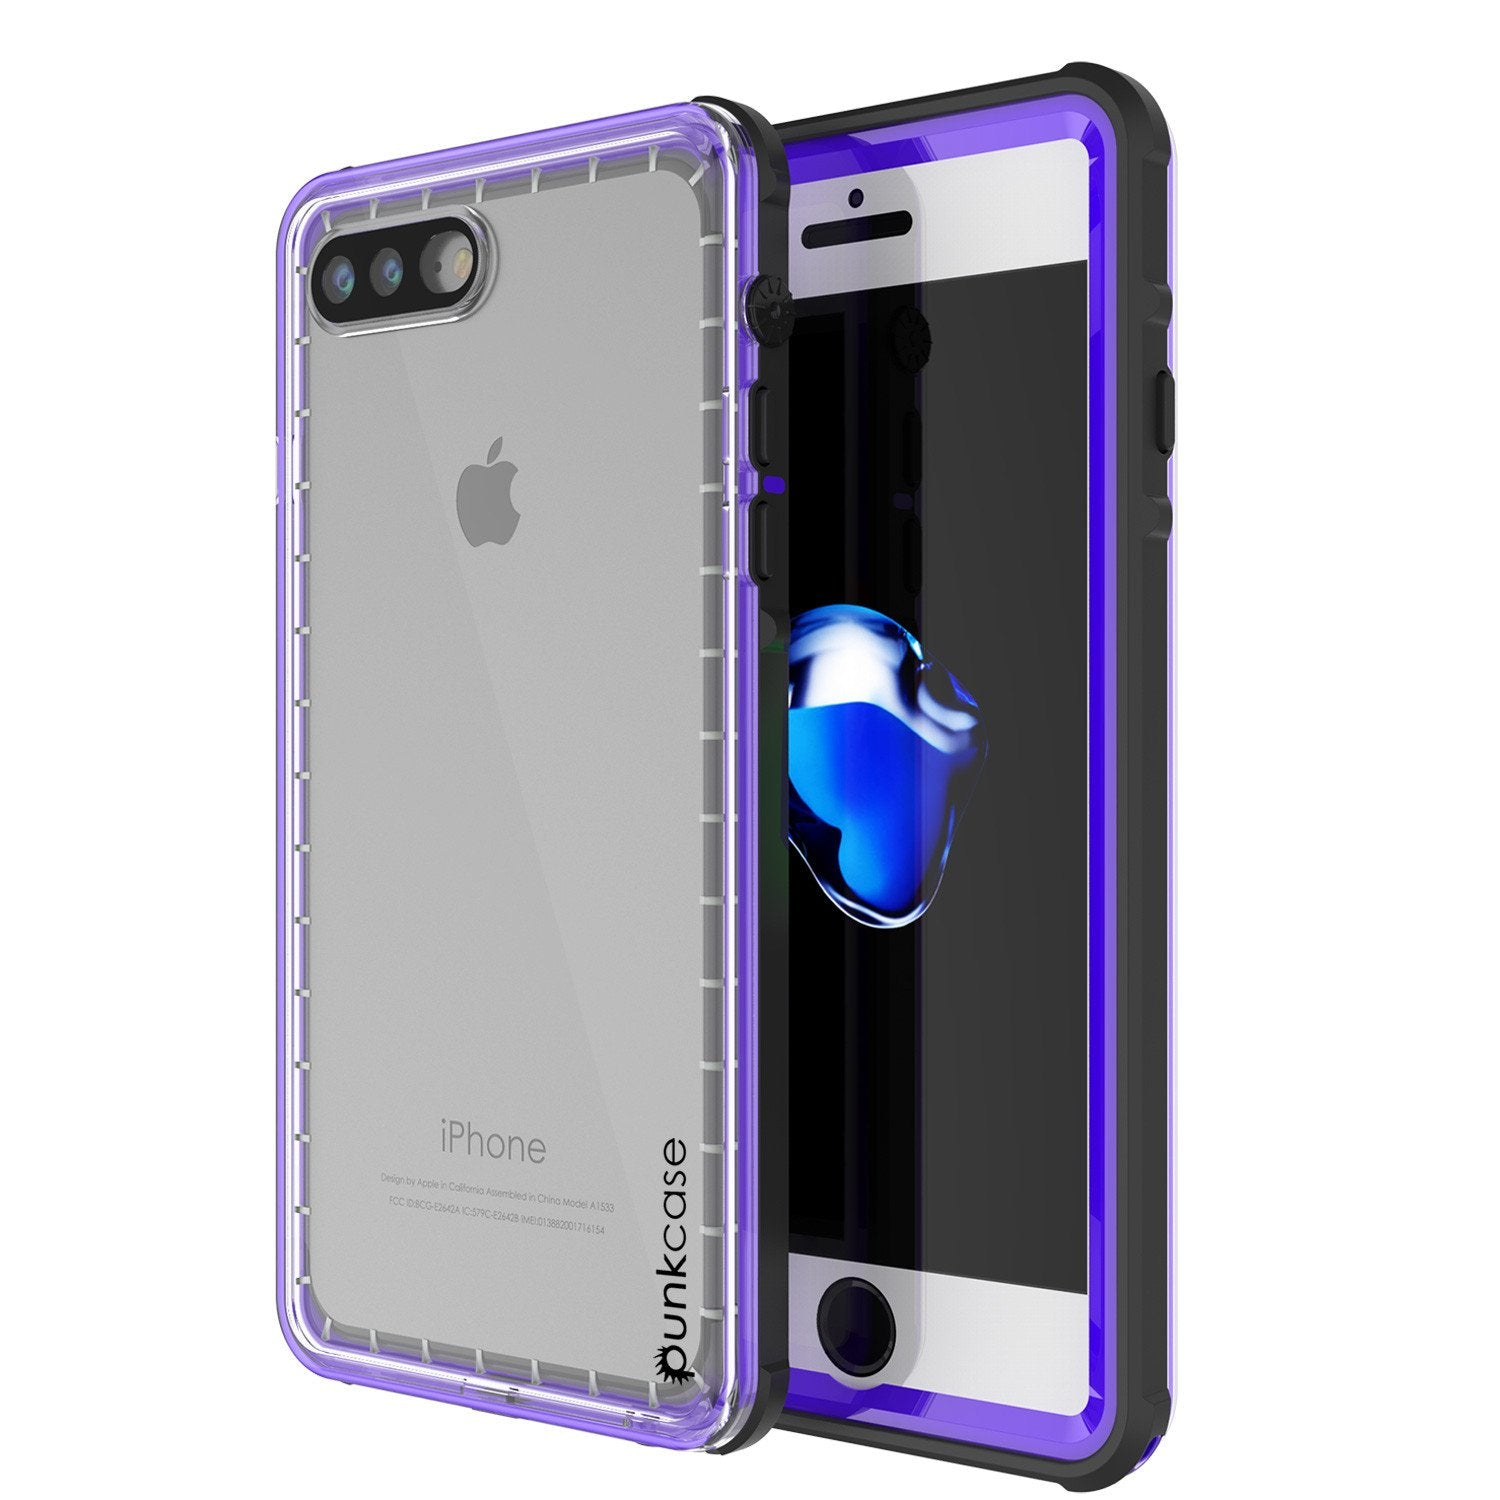 iPhone 7+ Plus Waterproof Case, PUNKcase CRYSTAL Purple W/ Attached Screen Protector  | Warranty